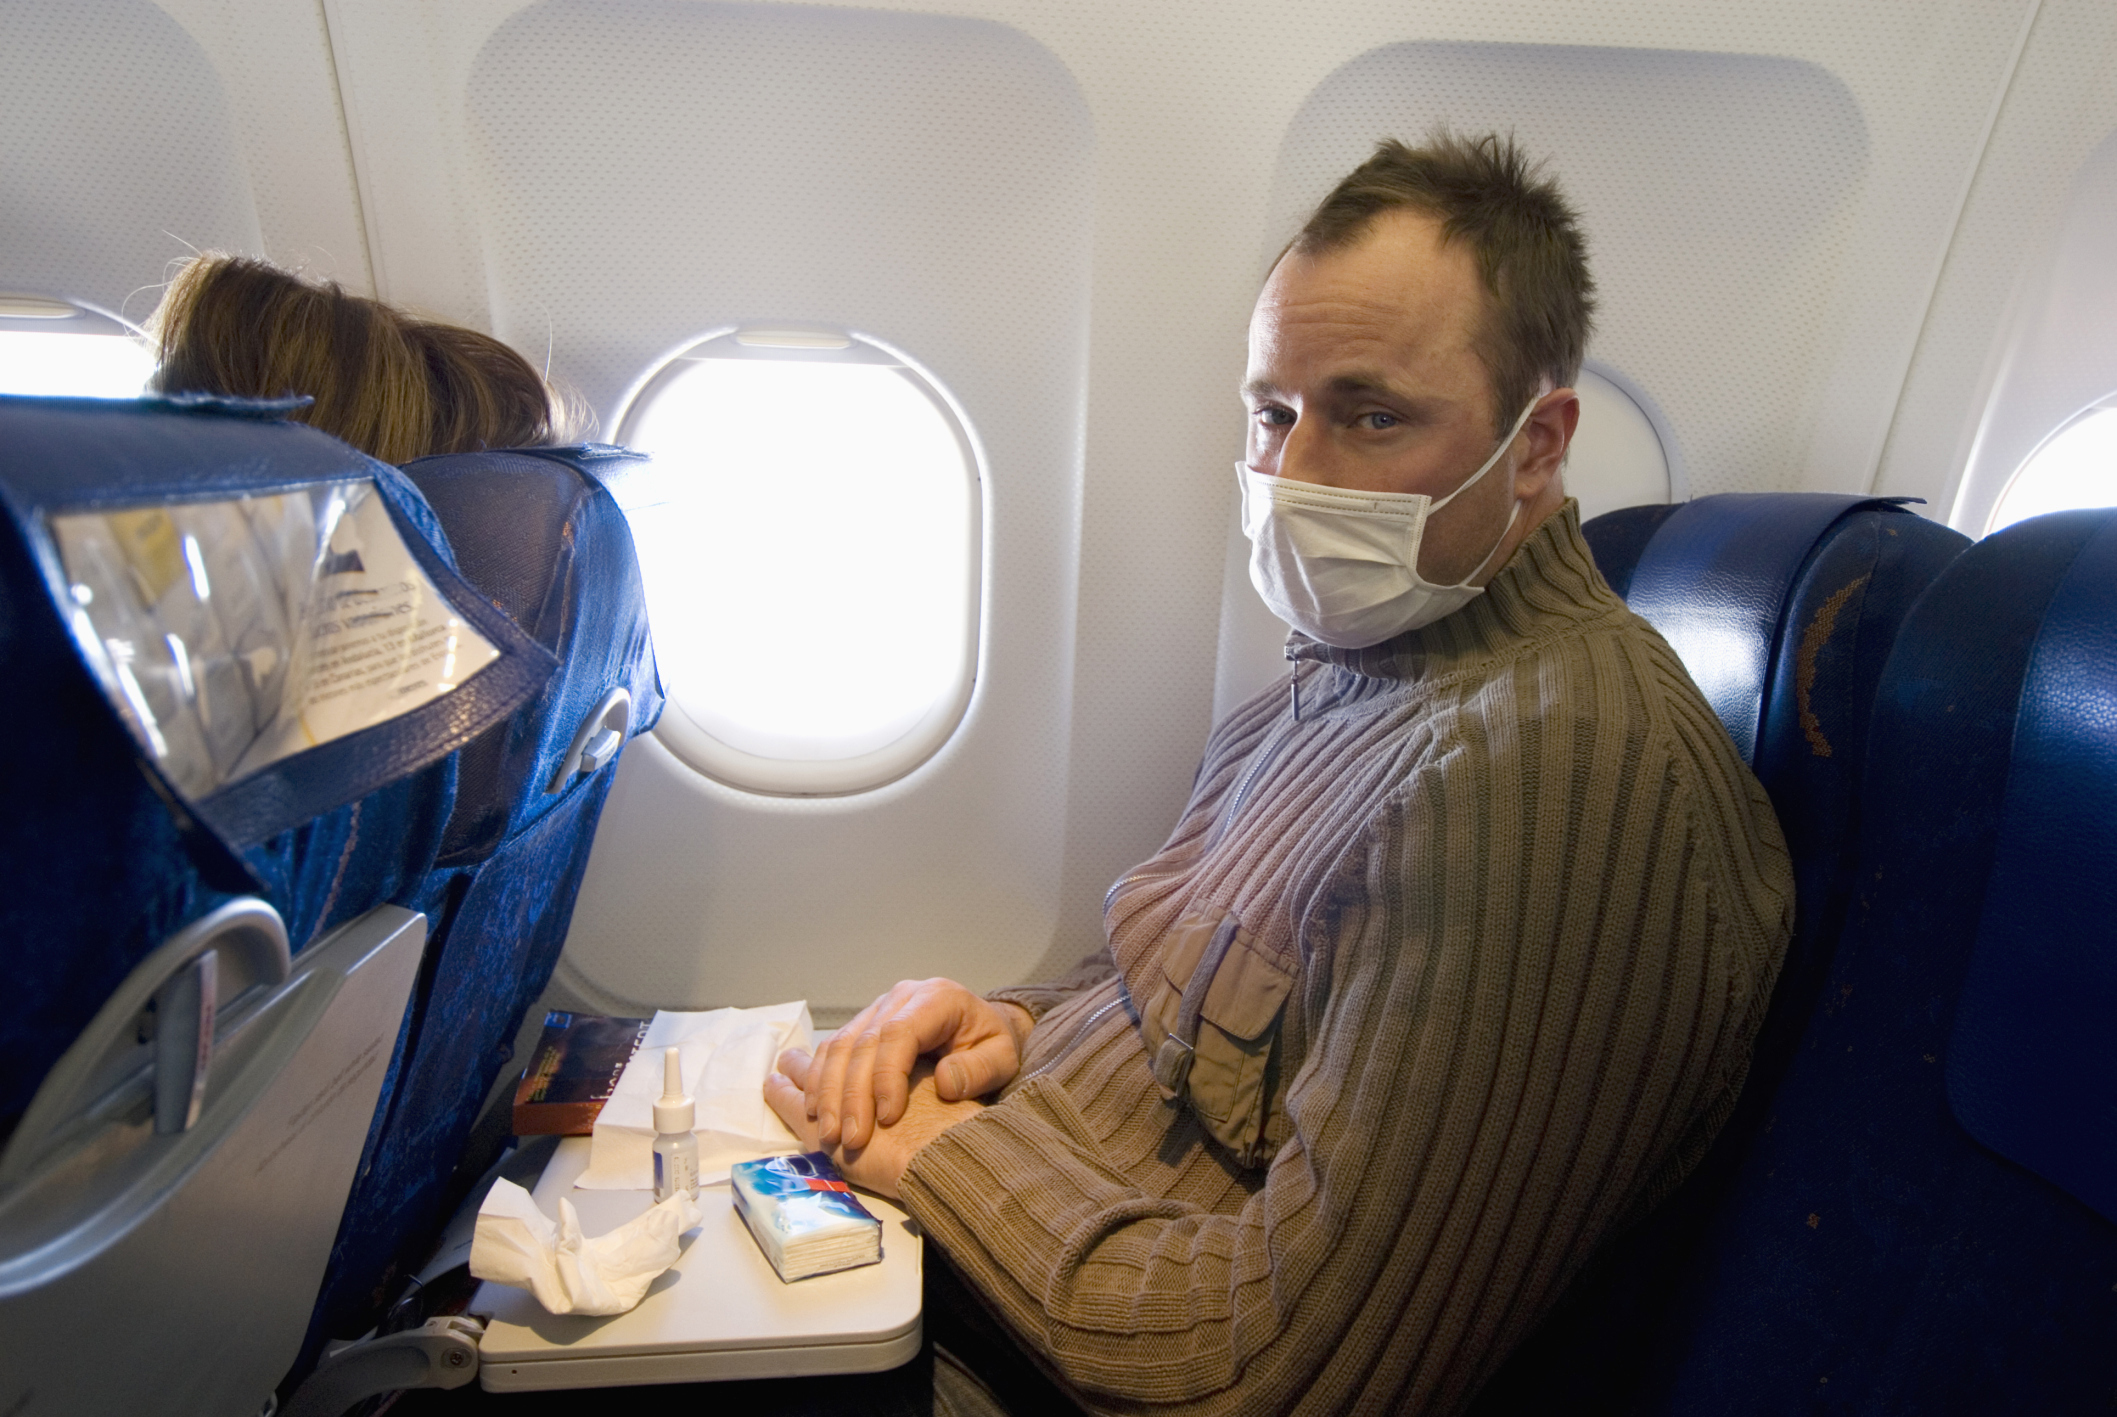 What to Do When Seated Next to a Sick Person on a Plane